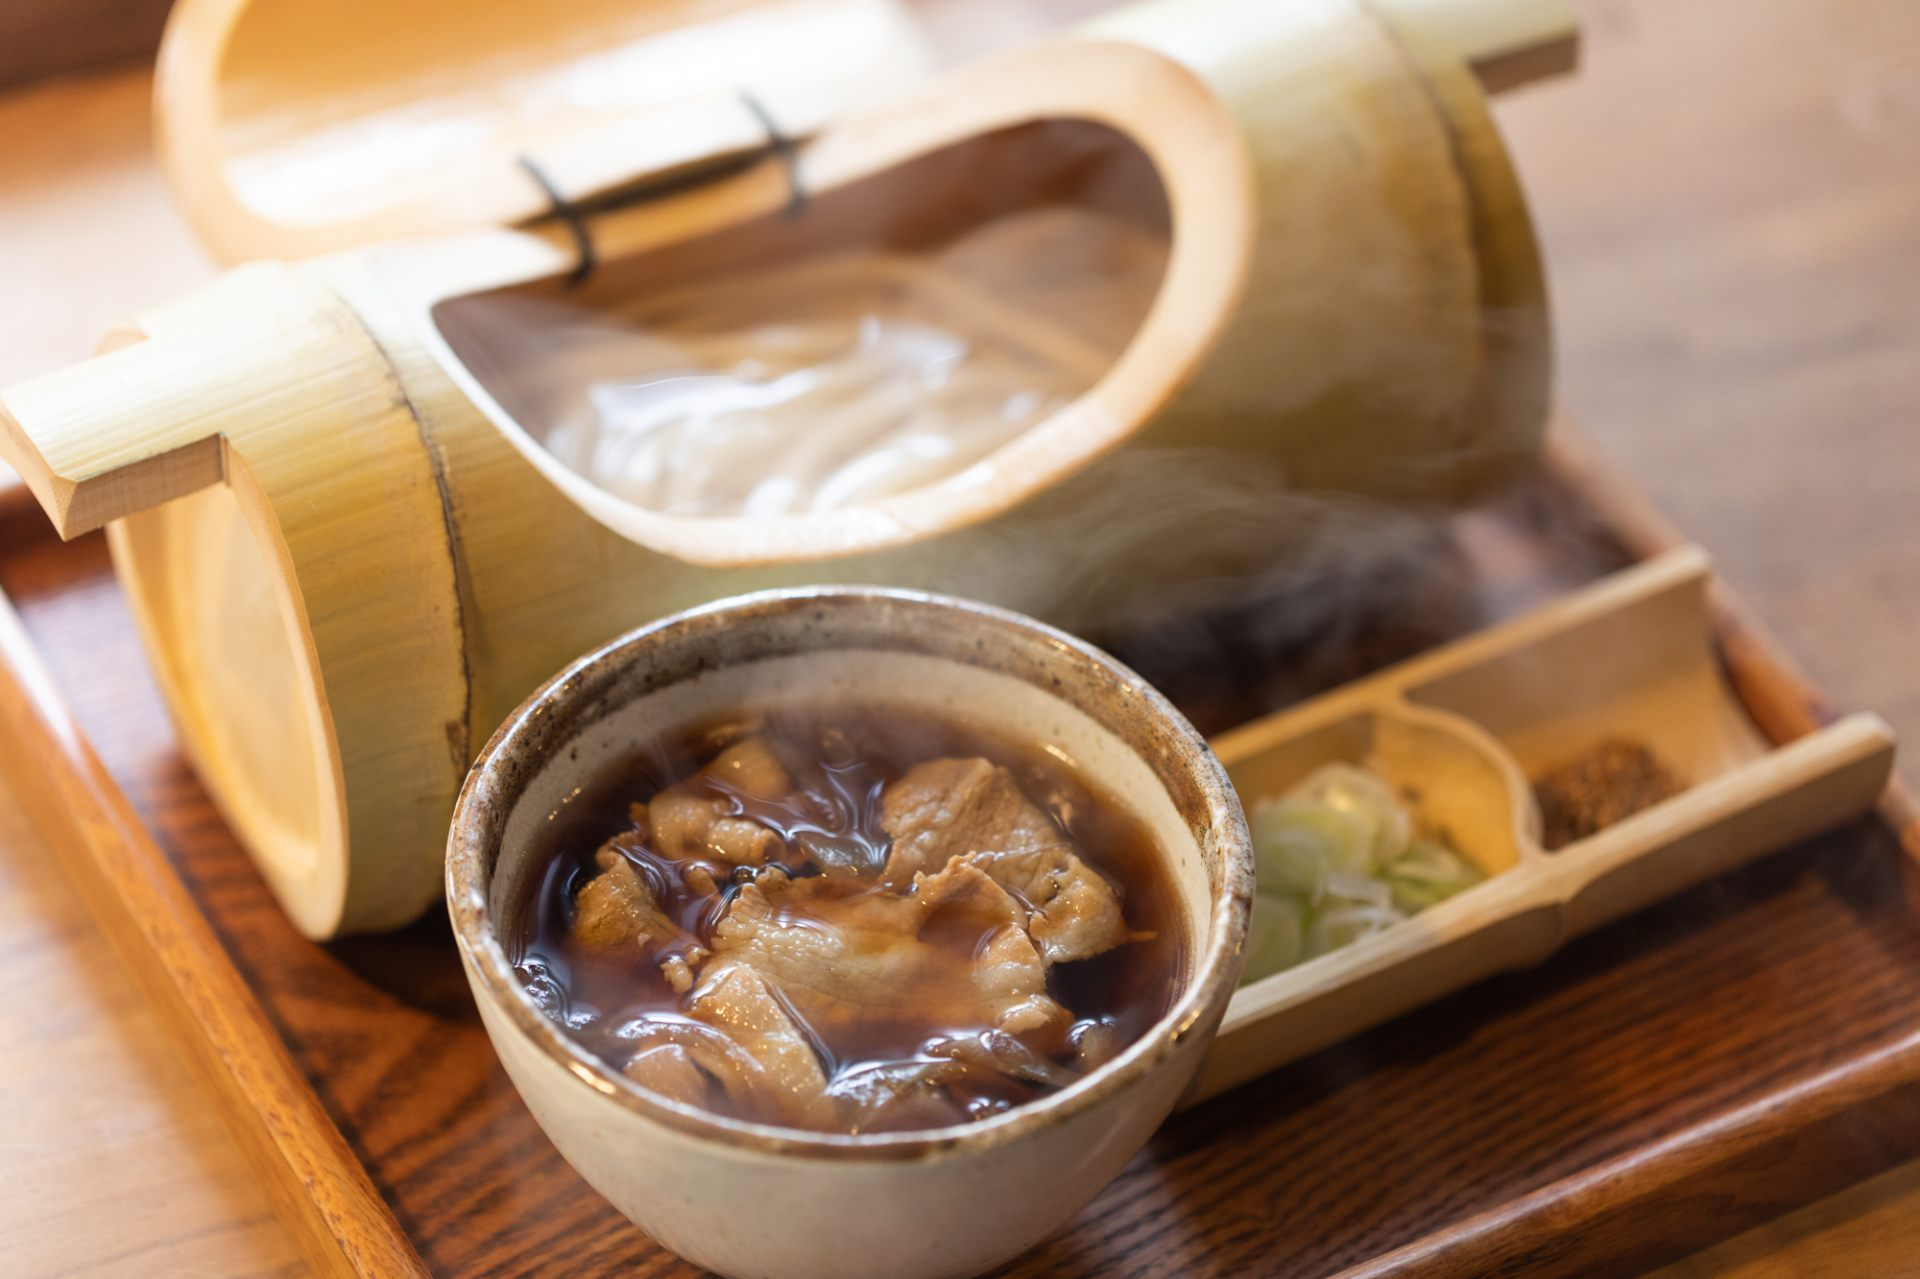 Popular menu item: Straight-from-the-pot udon noodles with meat broth (850 yen)